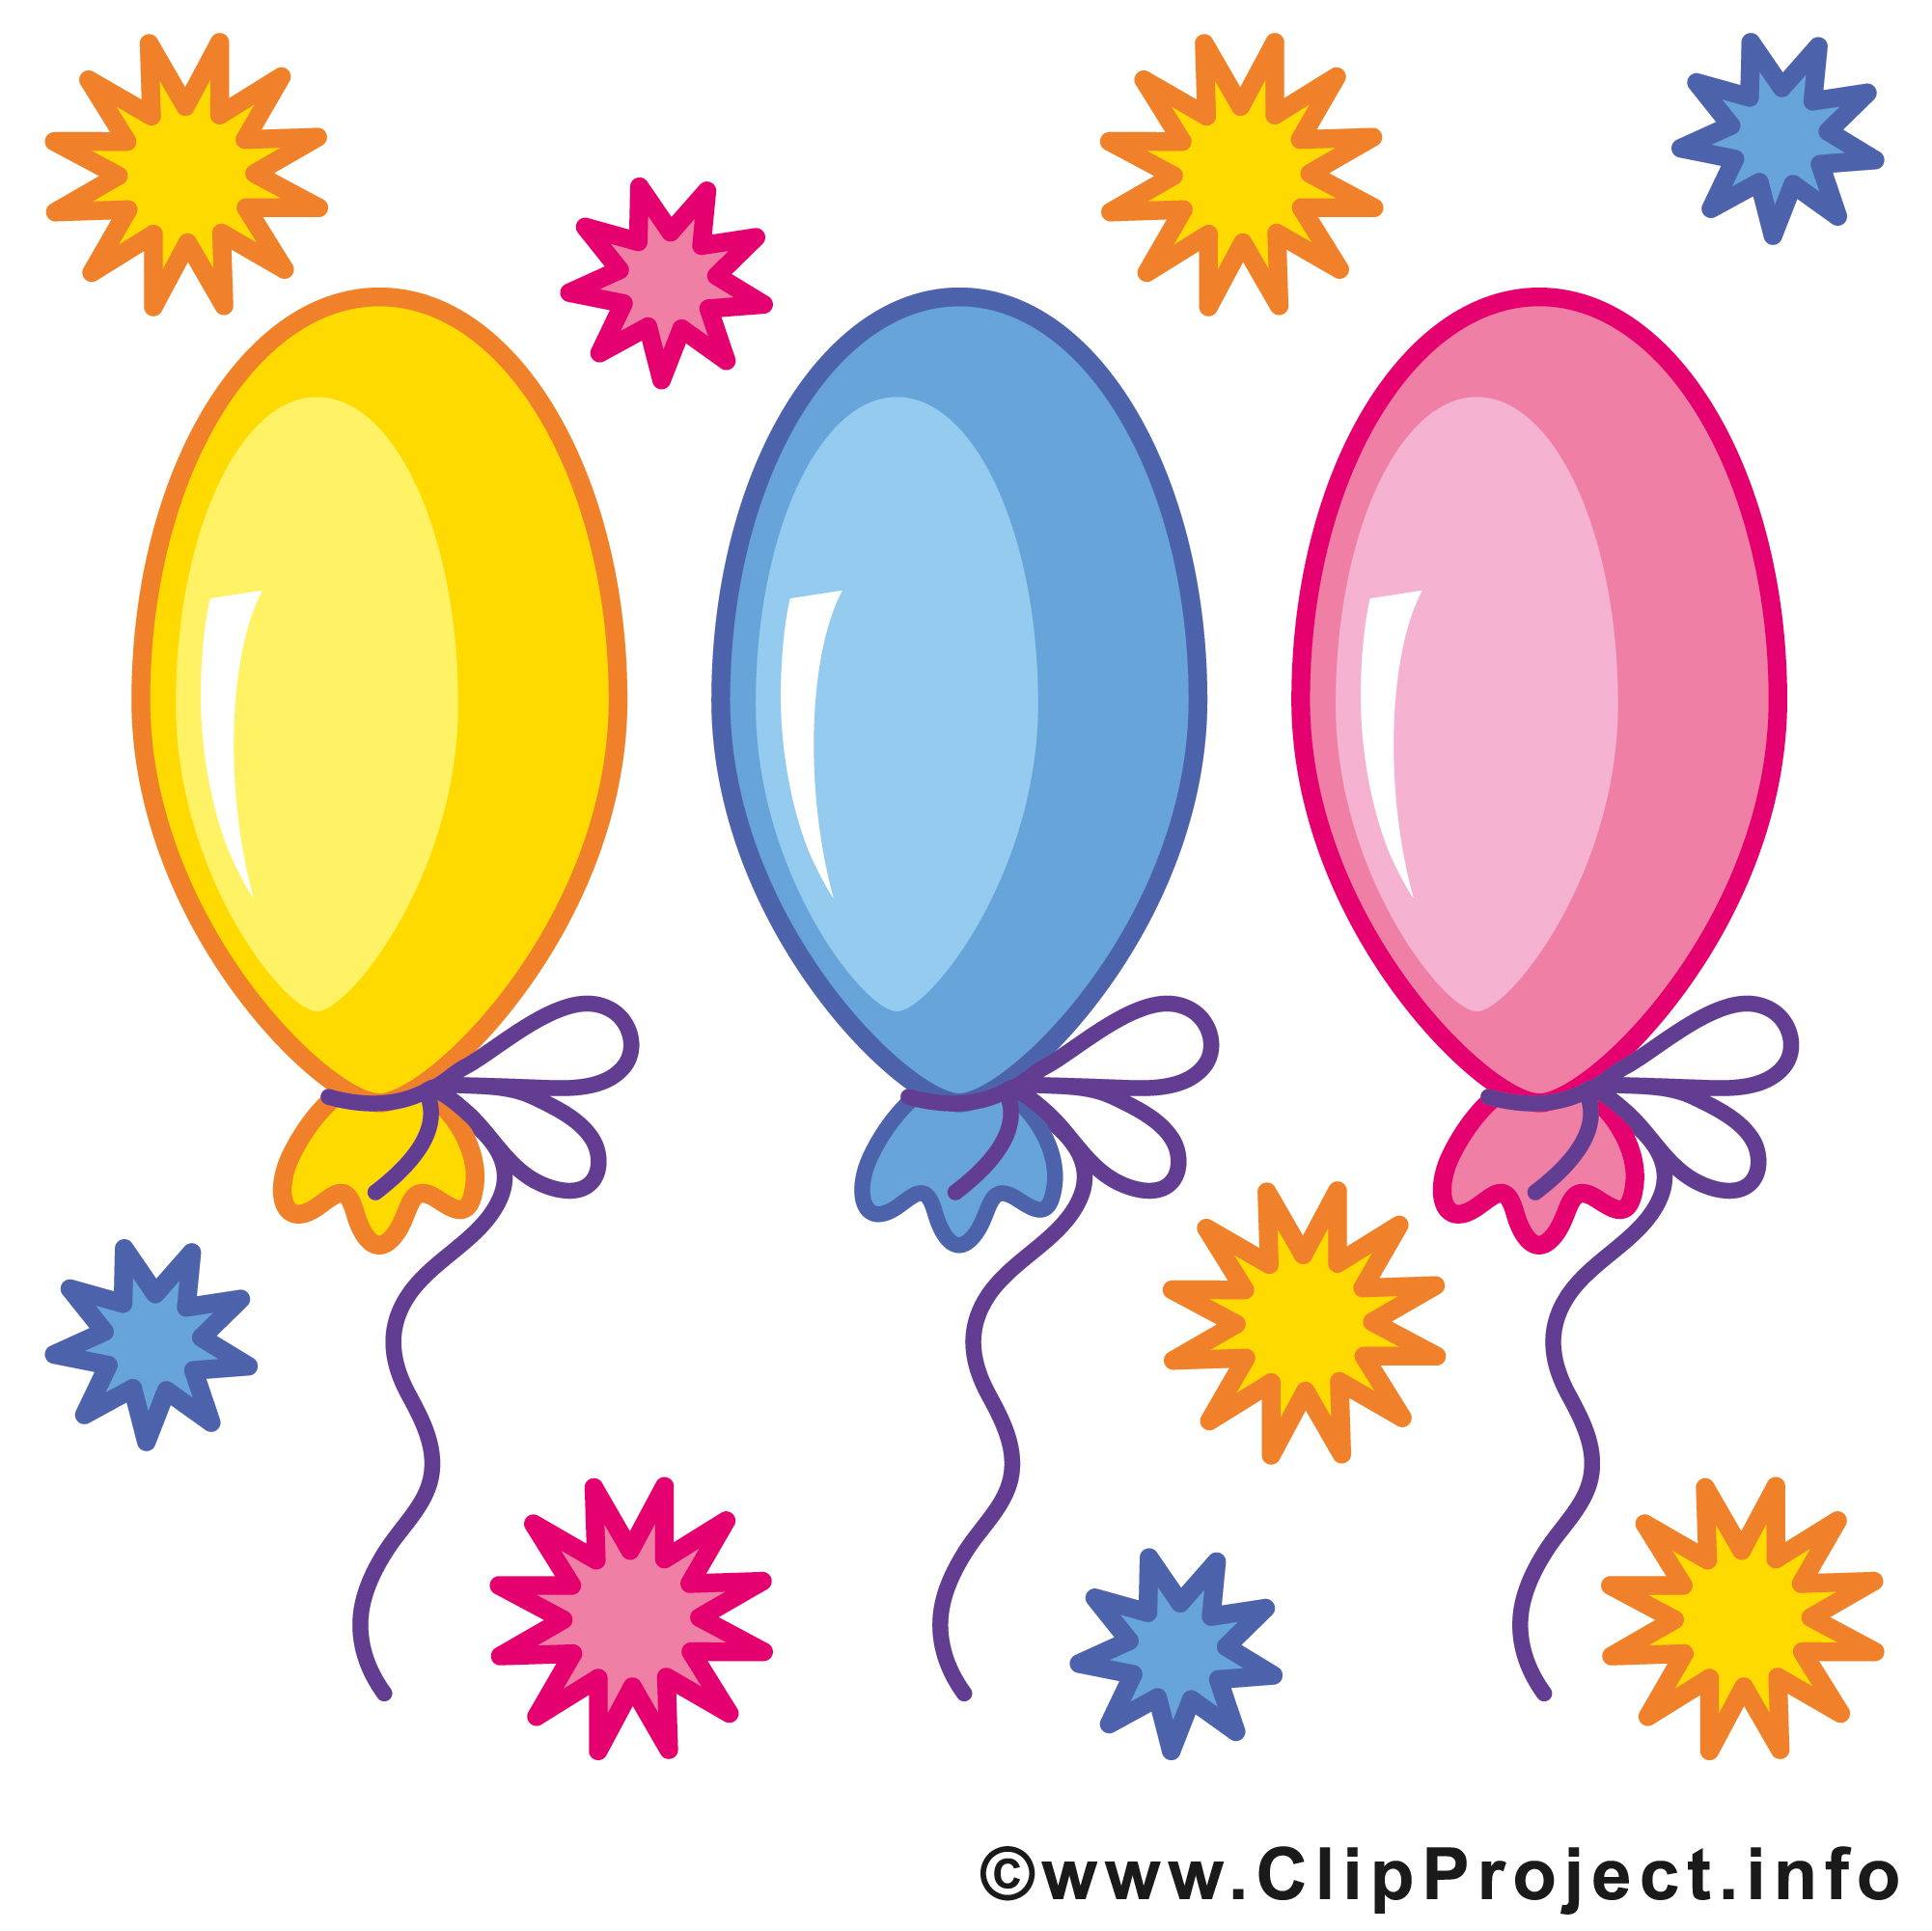 free clip art - Clipart Free Images